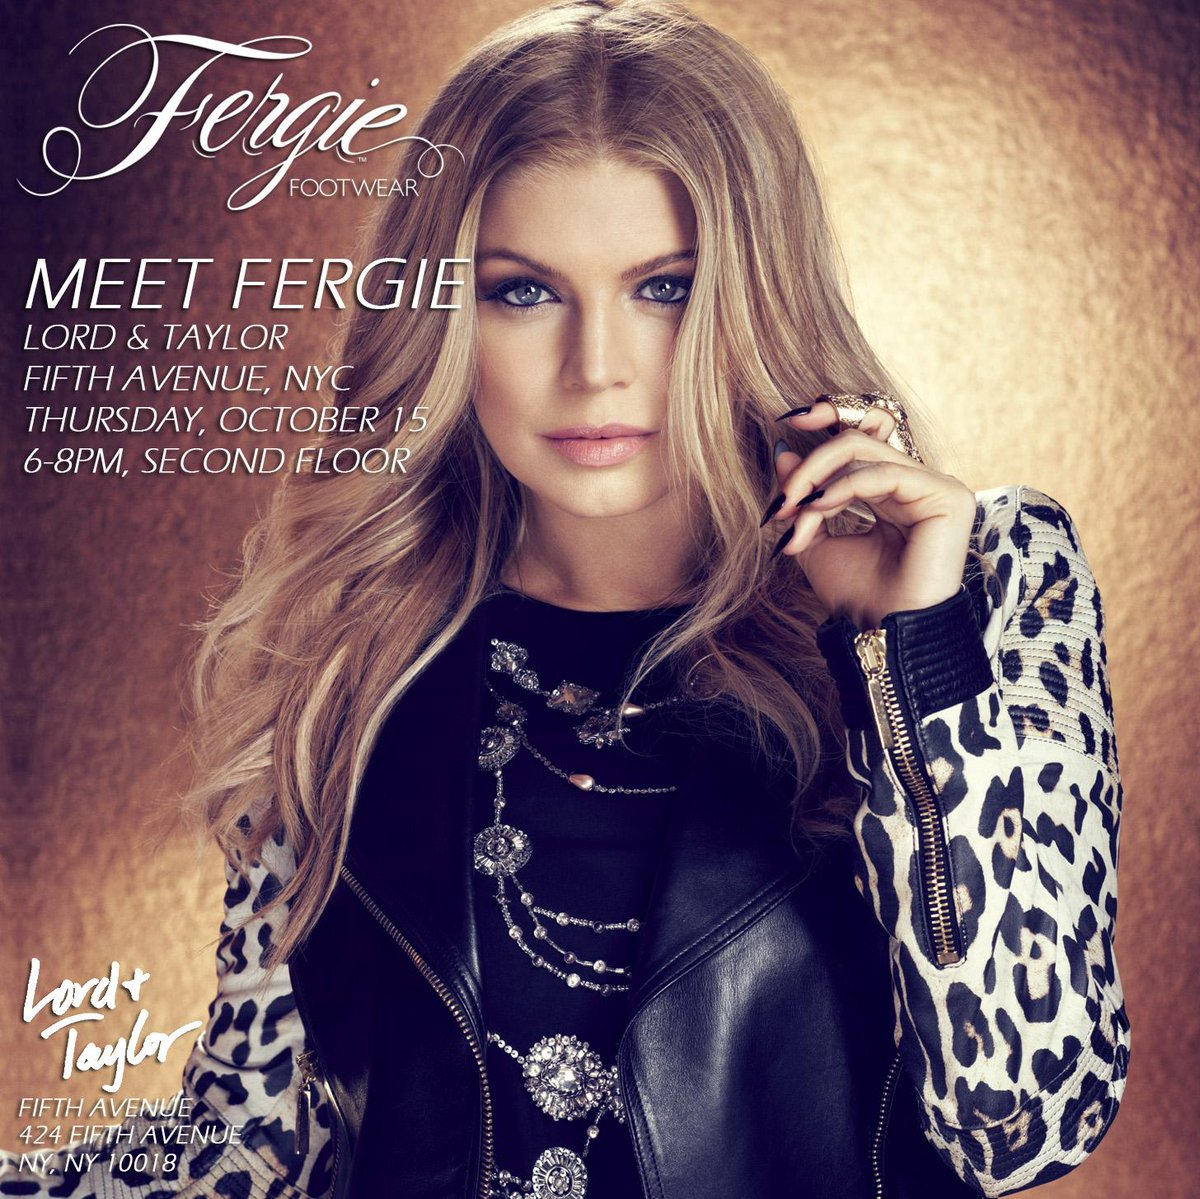 RT @FergieFootwear: 10/15 Meet @Fergie 6-8pm at @LordAndTaylor NYC! W/purchase meet #Fergie & receive signed pic.http://t.co/bvSeWJFv30 htt…